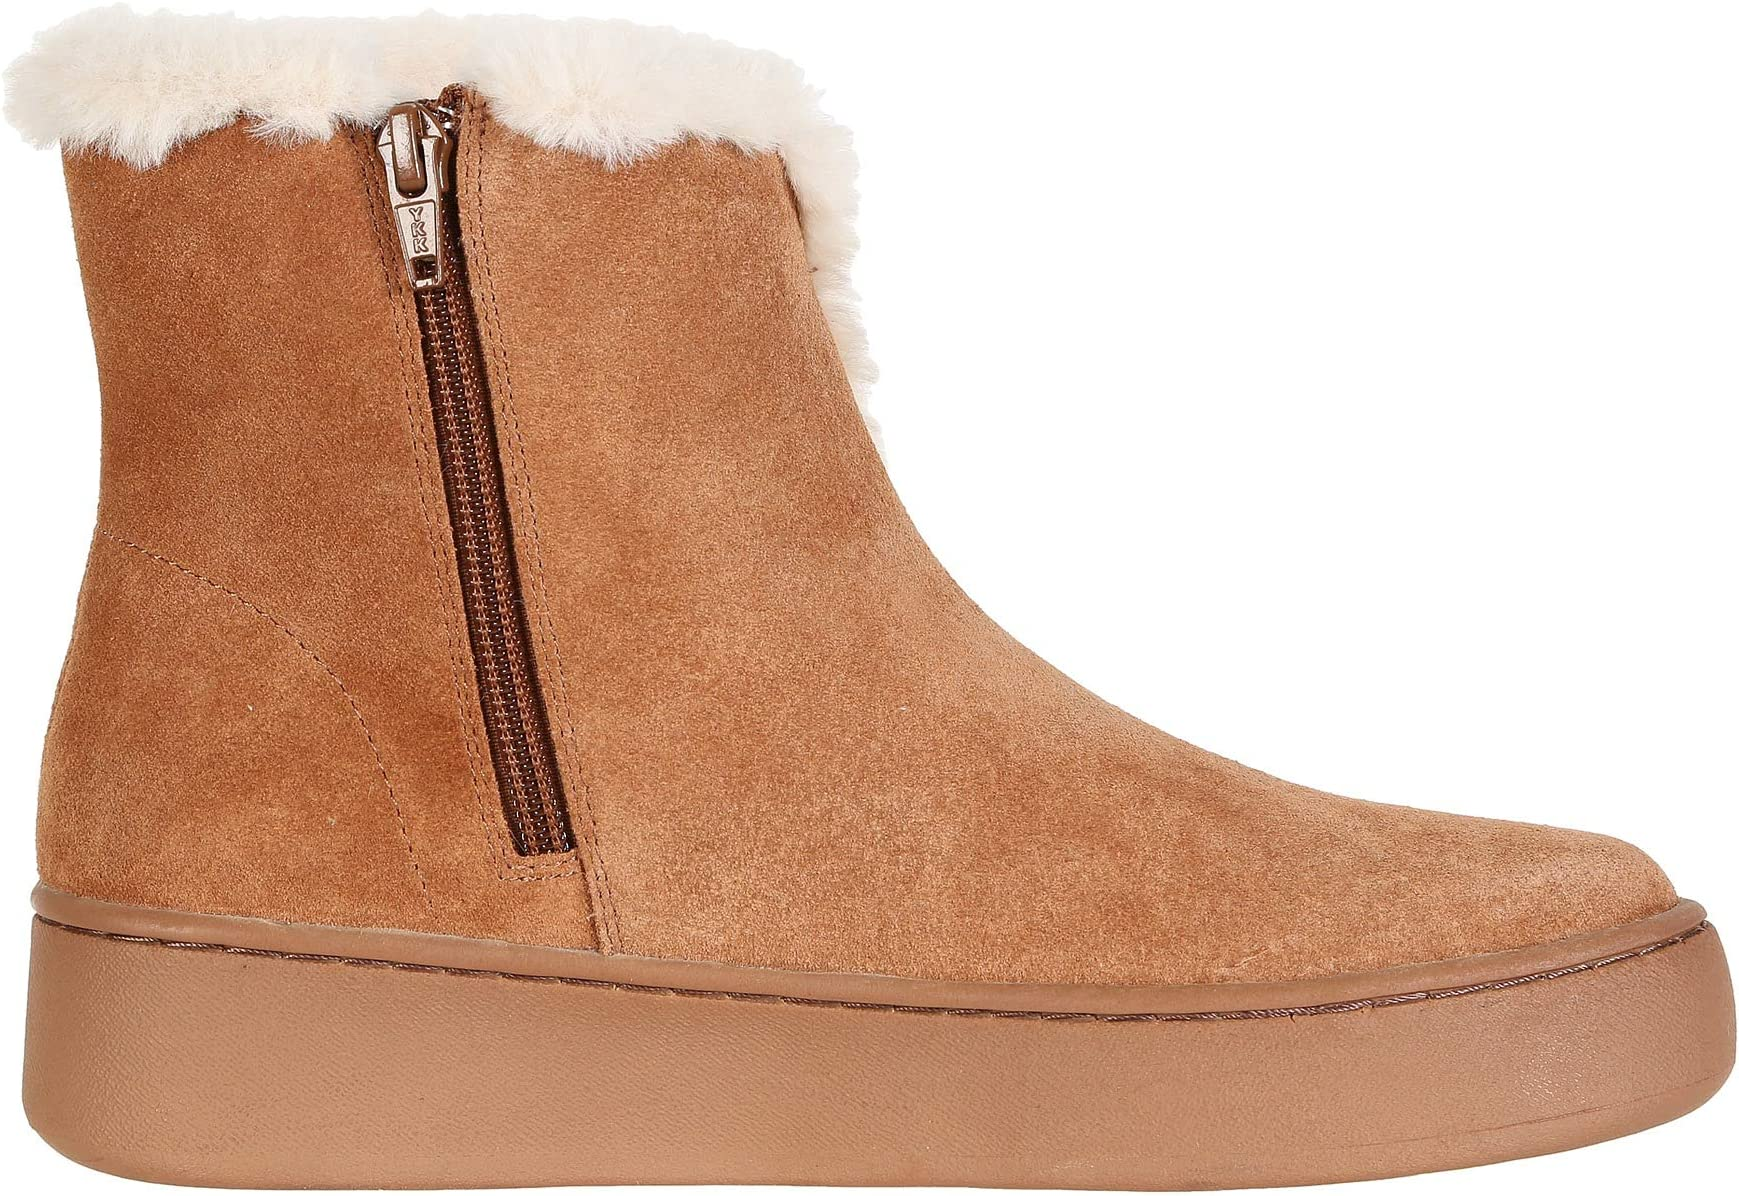 Soludos Whistler Cozy Boot | Women's shoes | 2020 Newest